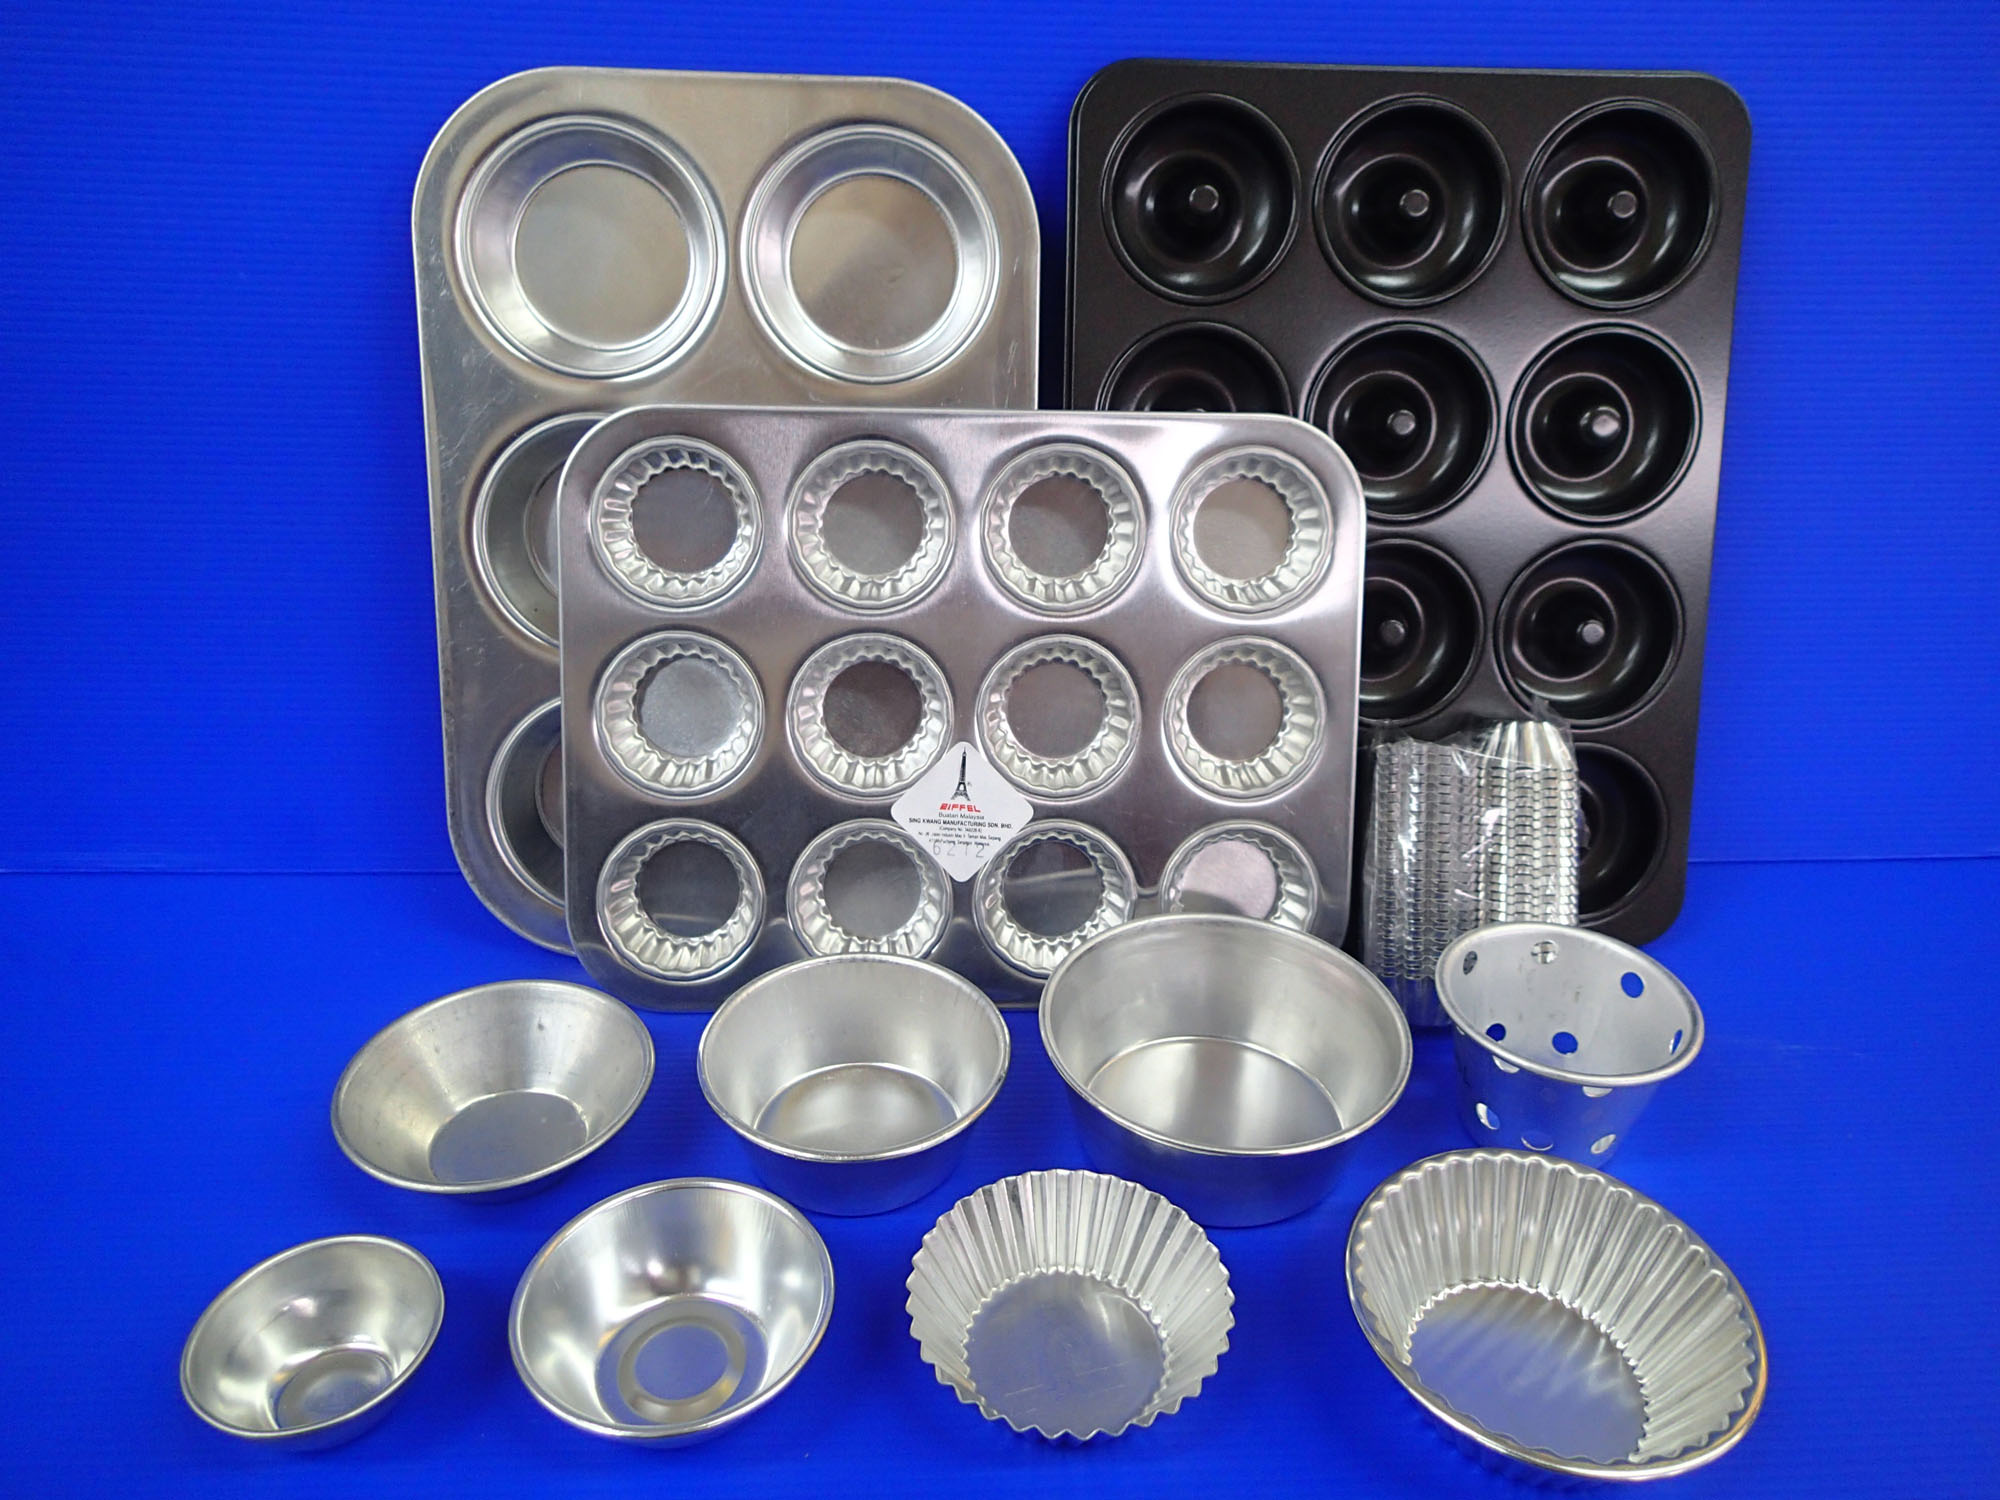 https://x1.sdimgs.com/sd_static/a/56580/H6+Baking+Tins+%26+Cups.jpg?v=20150119123750